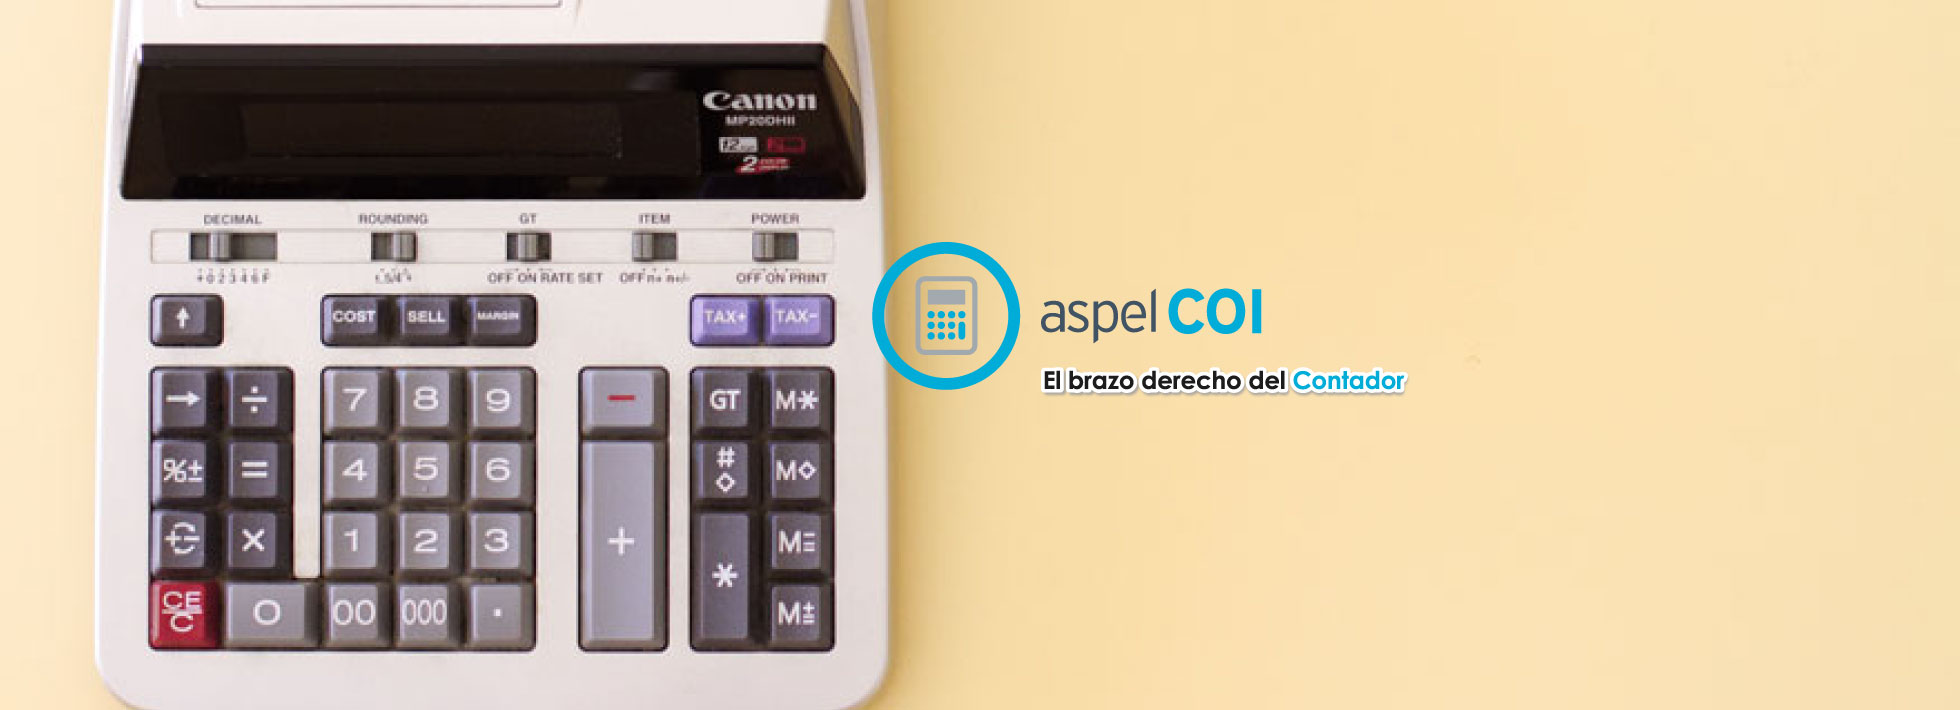 Reinstalable 19 aspel coi 8